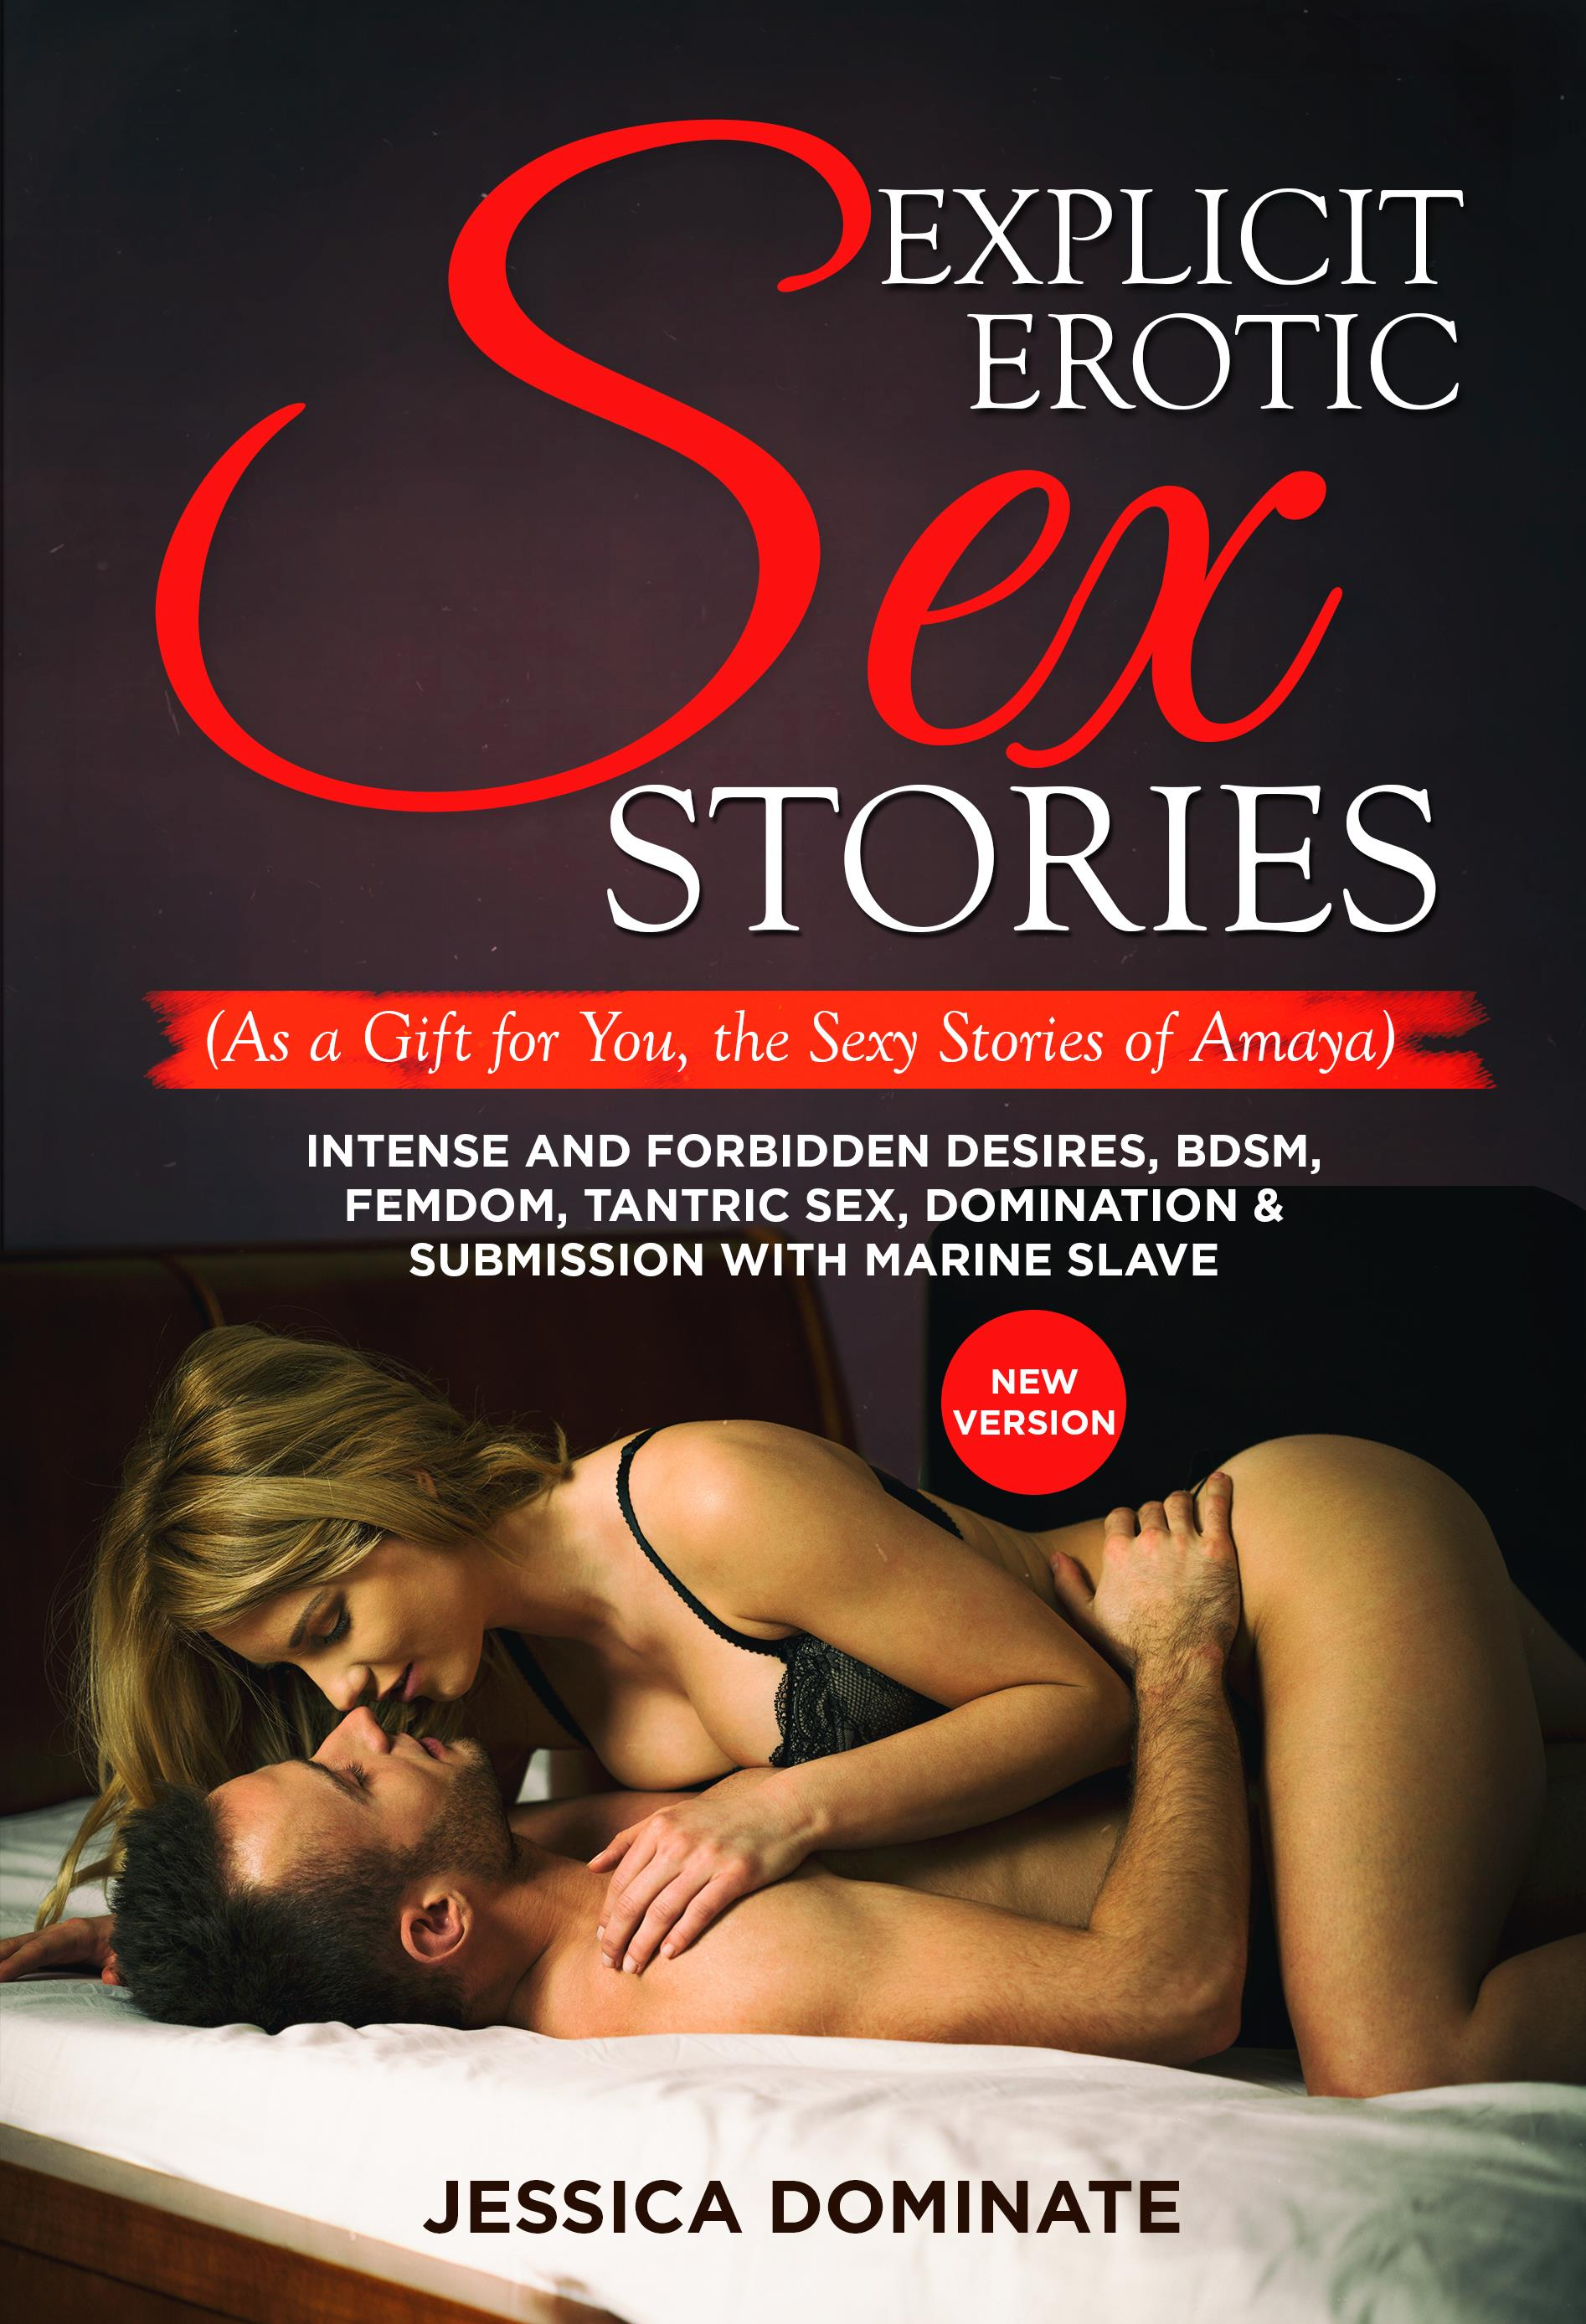 Explicit erotic sex stories (As a Gift for You, the Sexy Stories of Amaya)